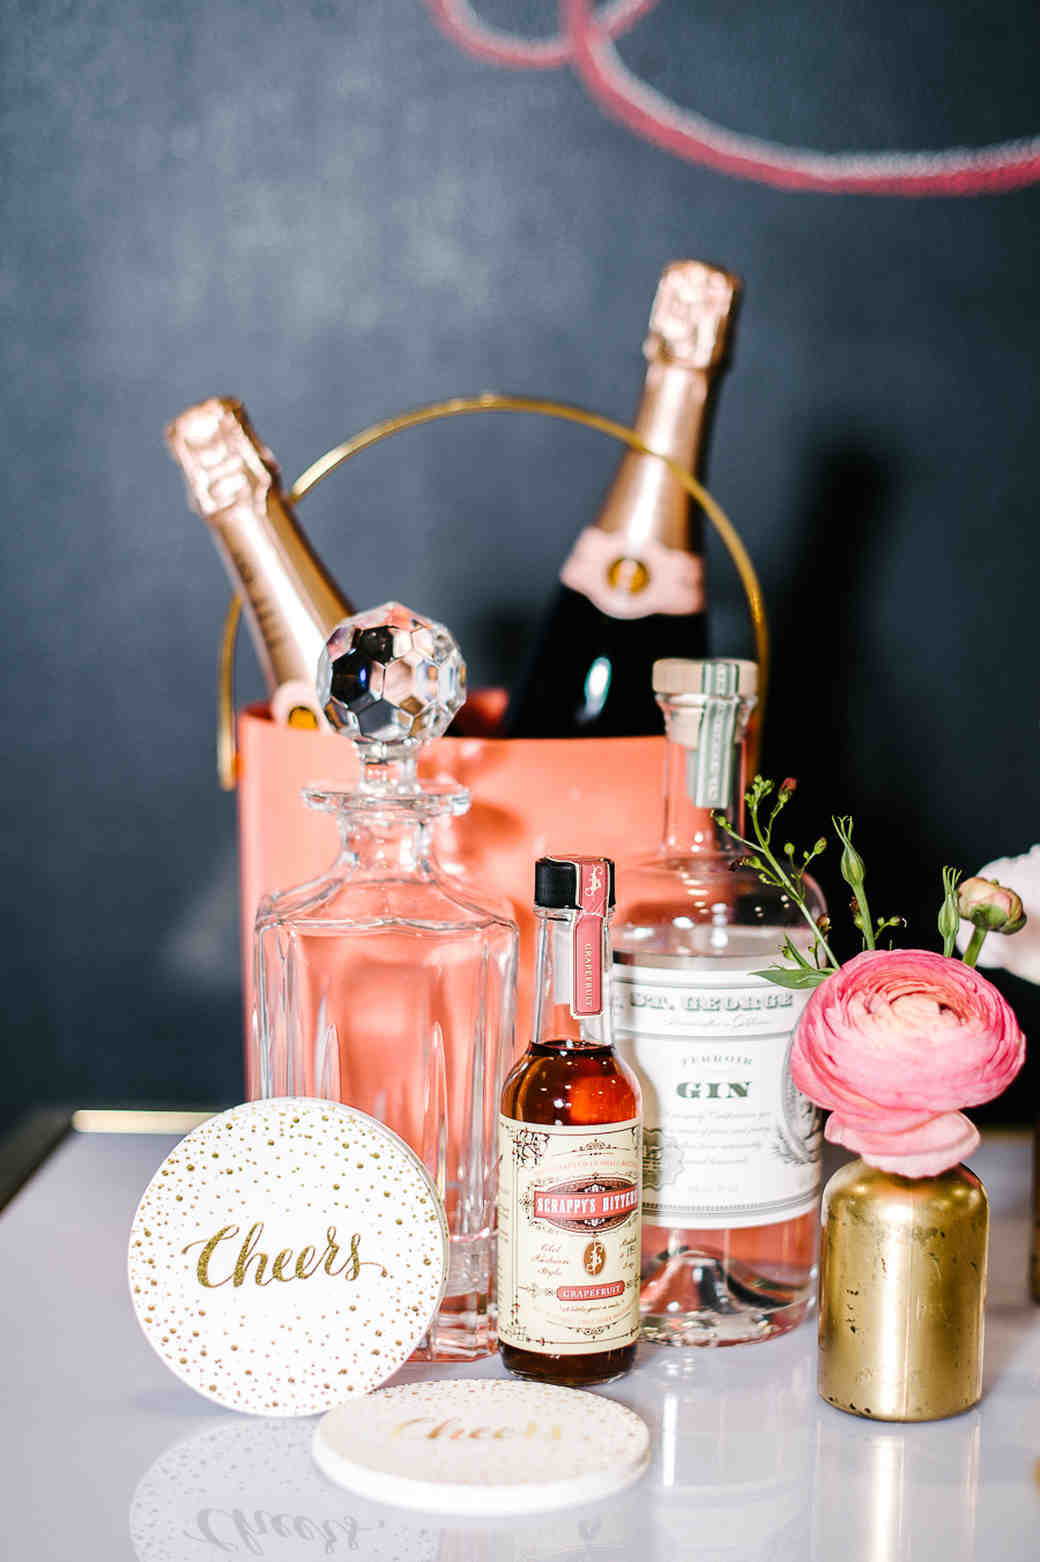 Build Your Own Cocktail Bar Options for a Bridal Shower